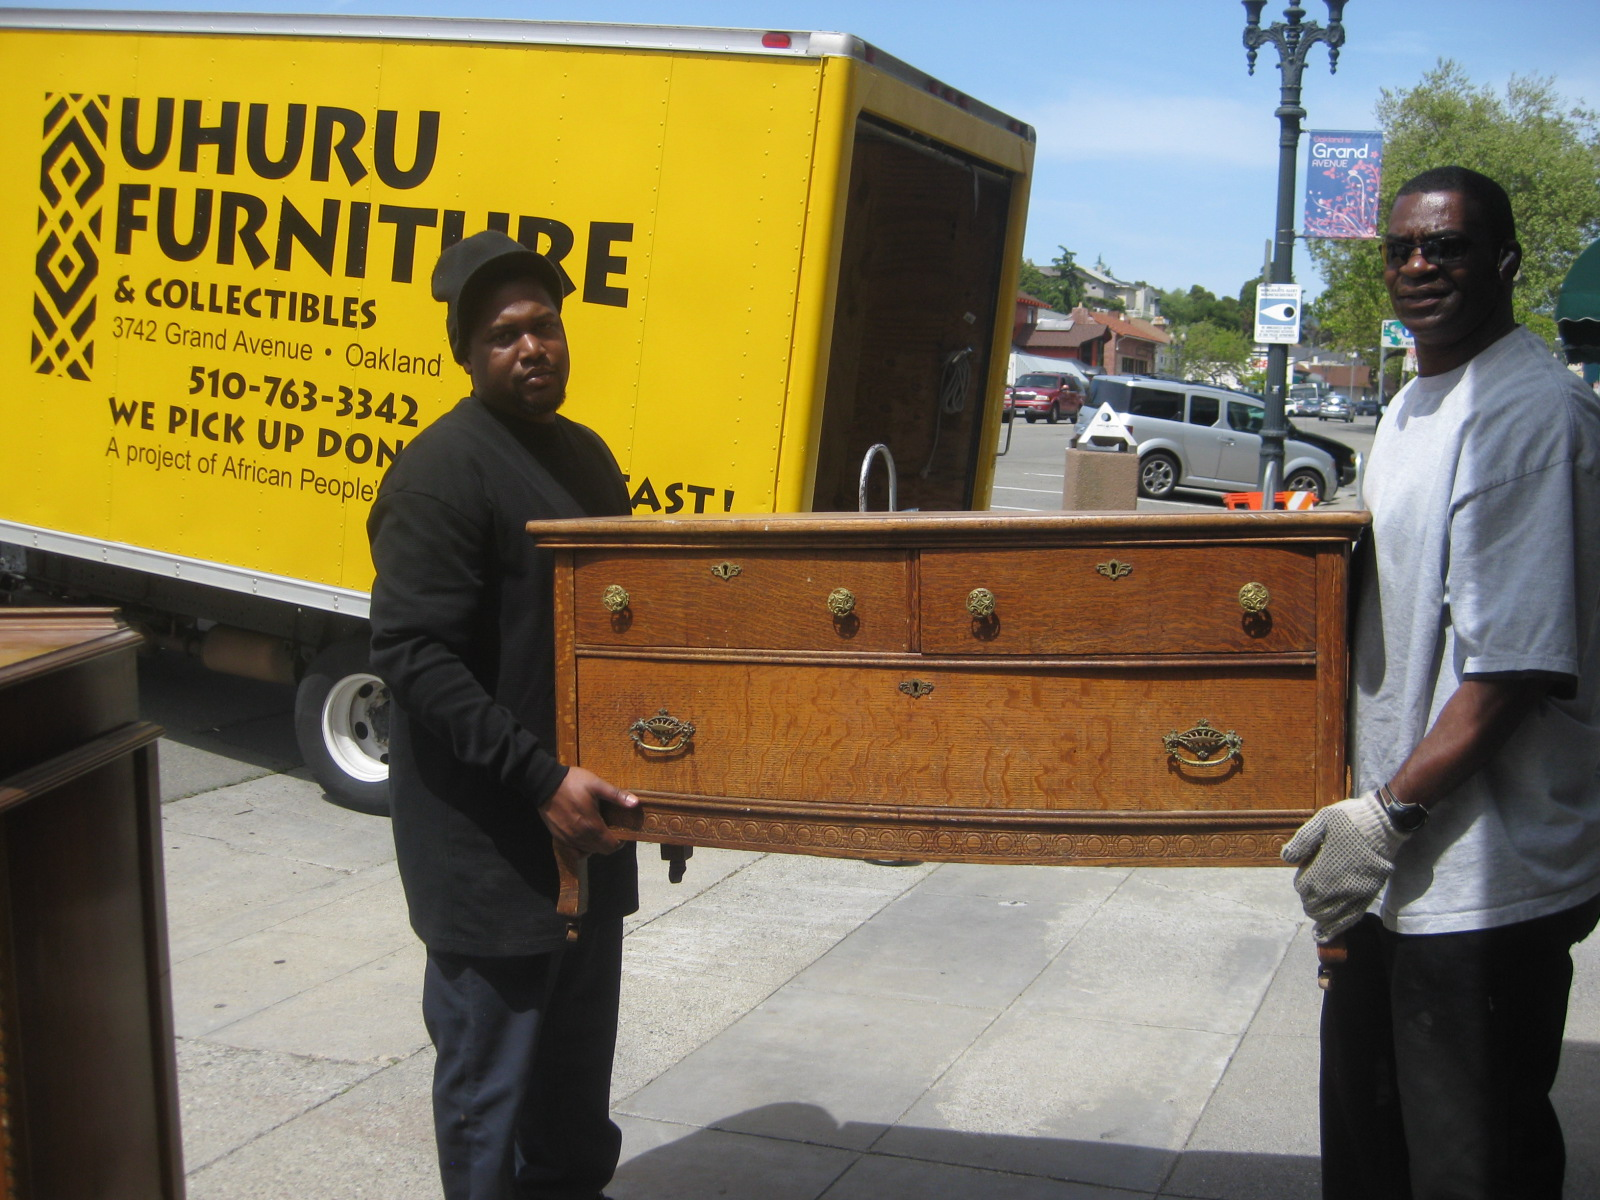 Uhuru Furniture Collectibles Donate Furniture